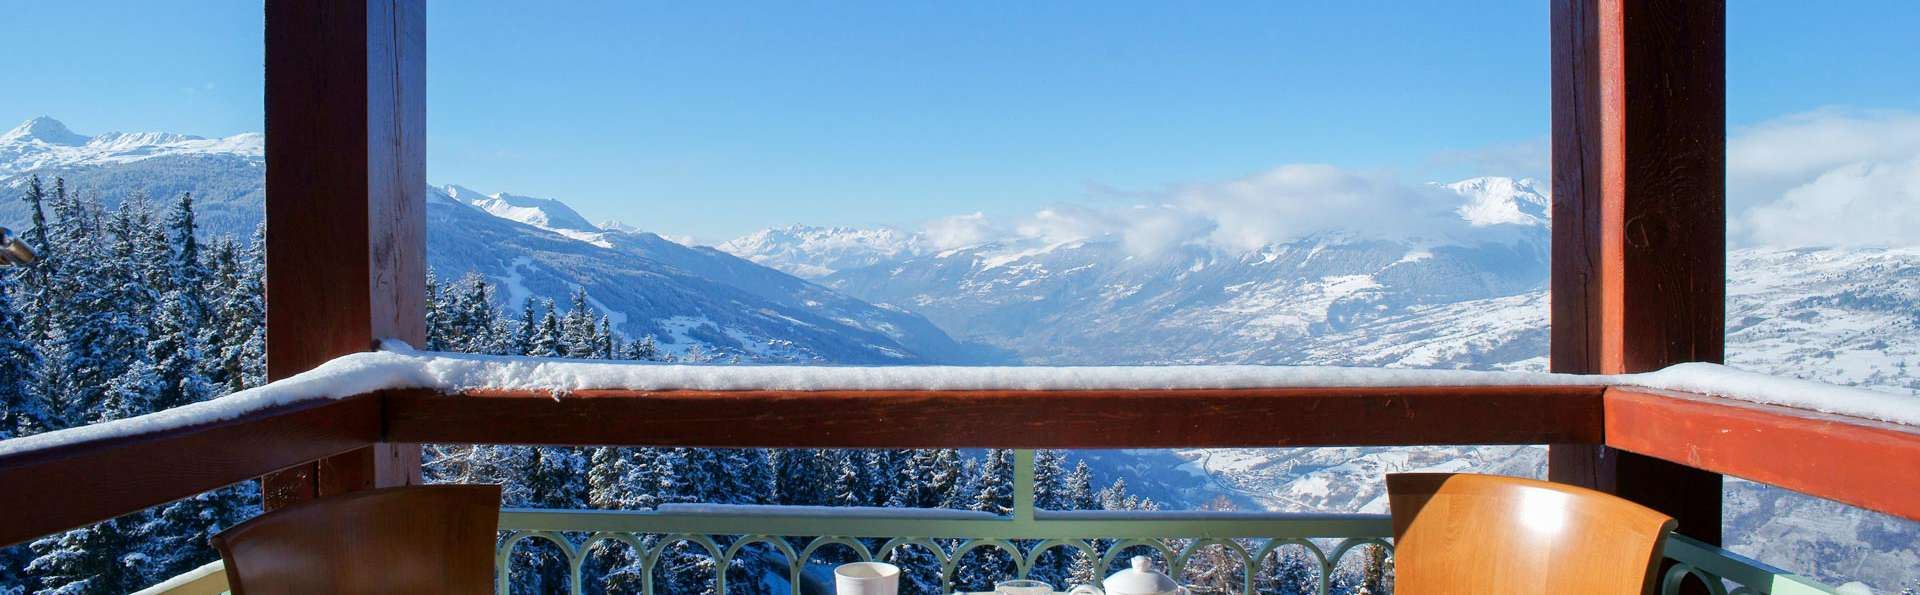 Mercure Les Arcs 1800 - EDIT_NEW_TERRACE_01.jpg